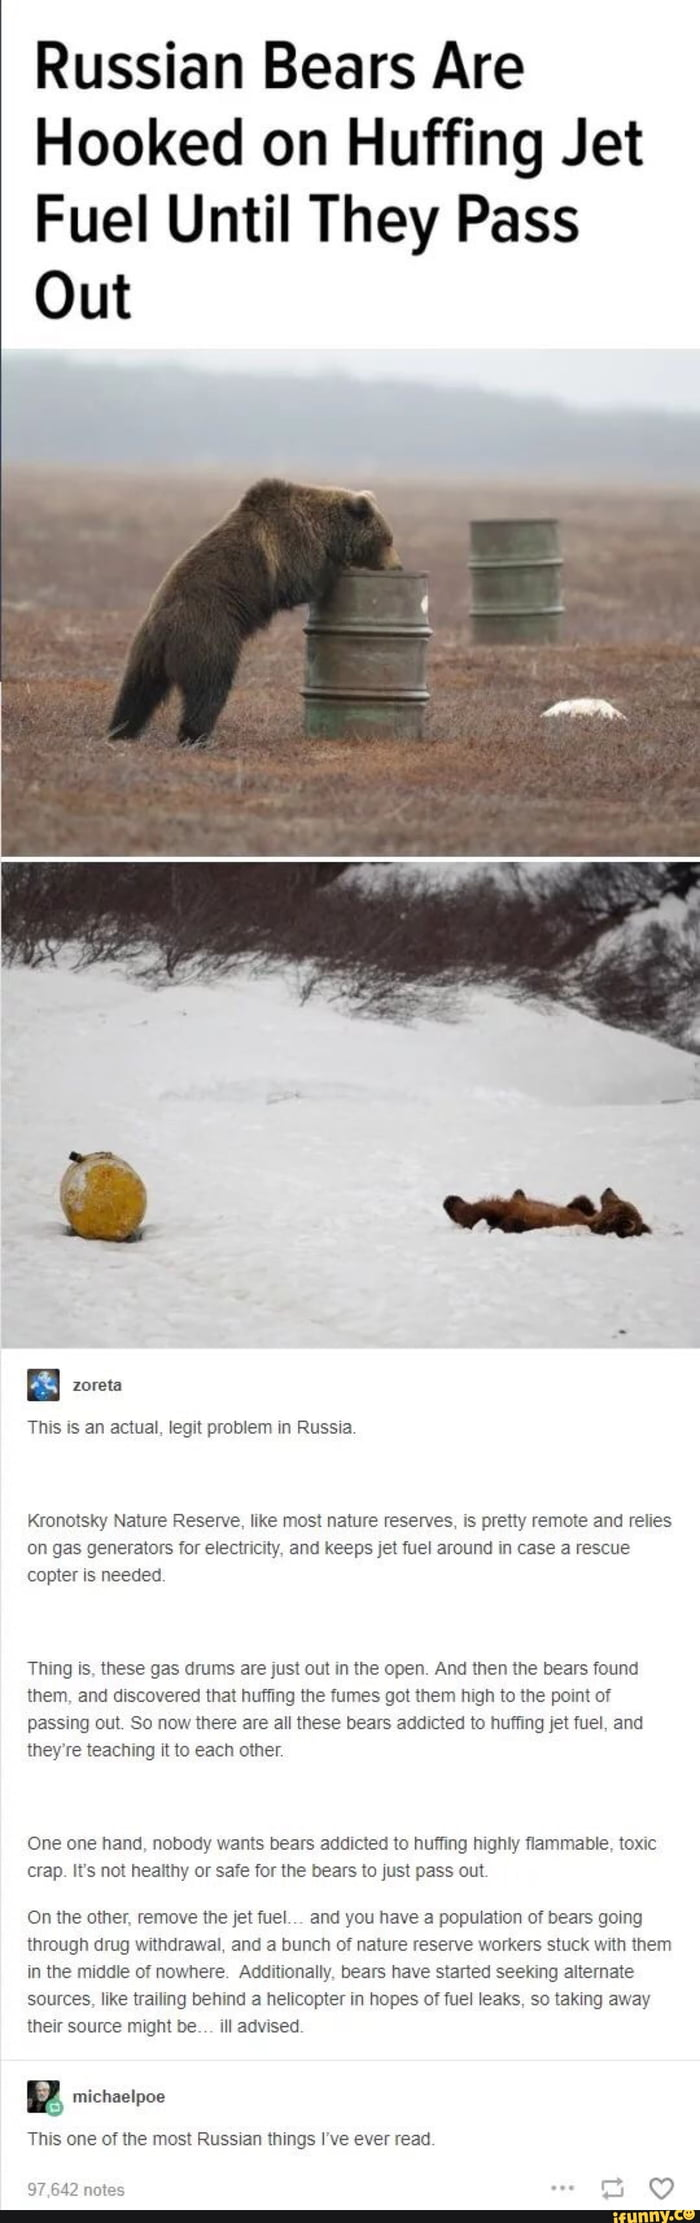 A real Russian problem